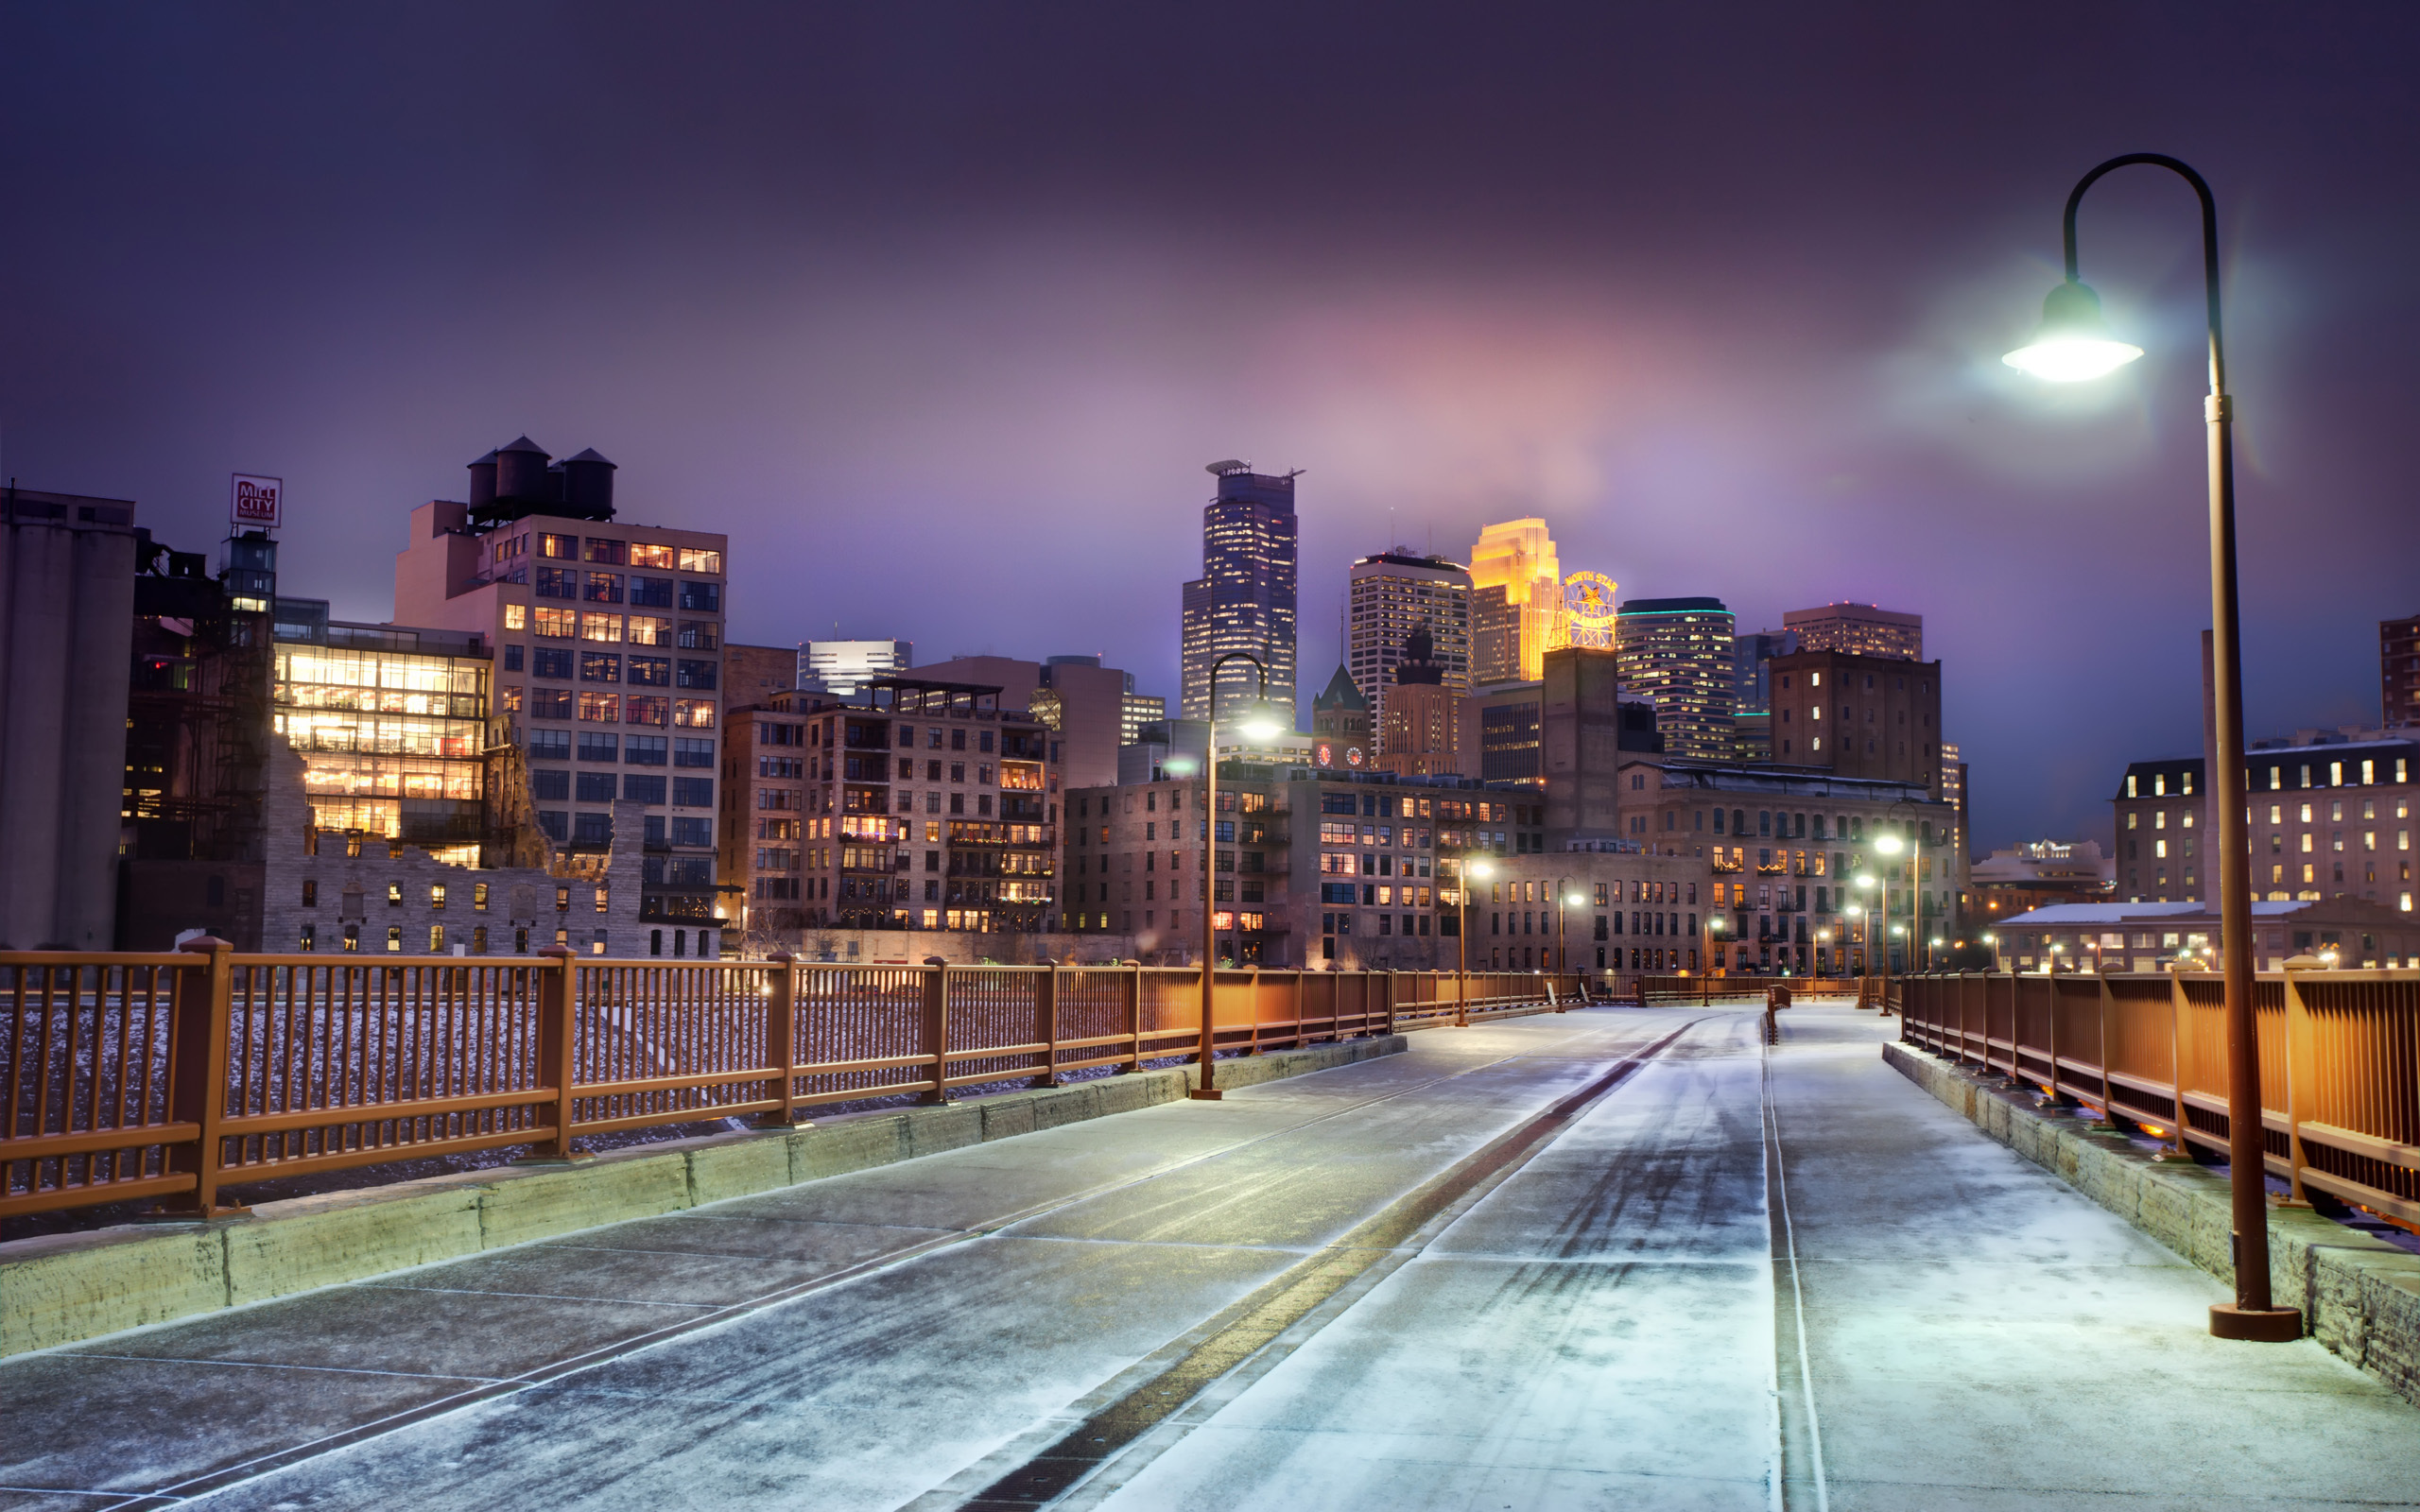 Minneapolis Full HD Wallpaper And Background Image